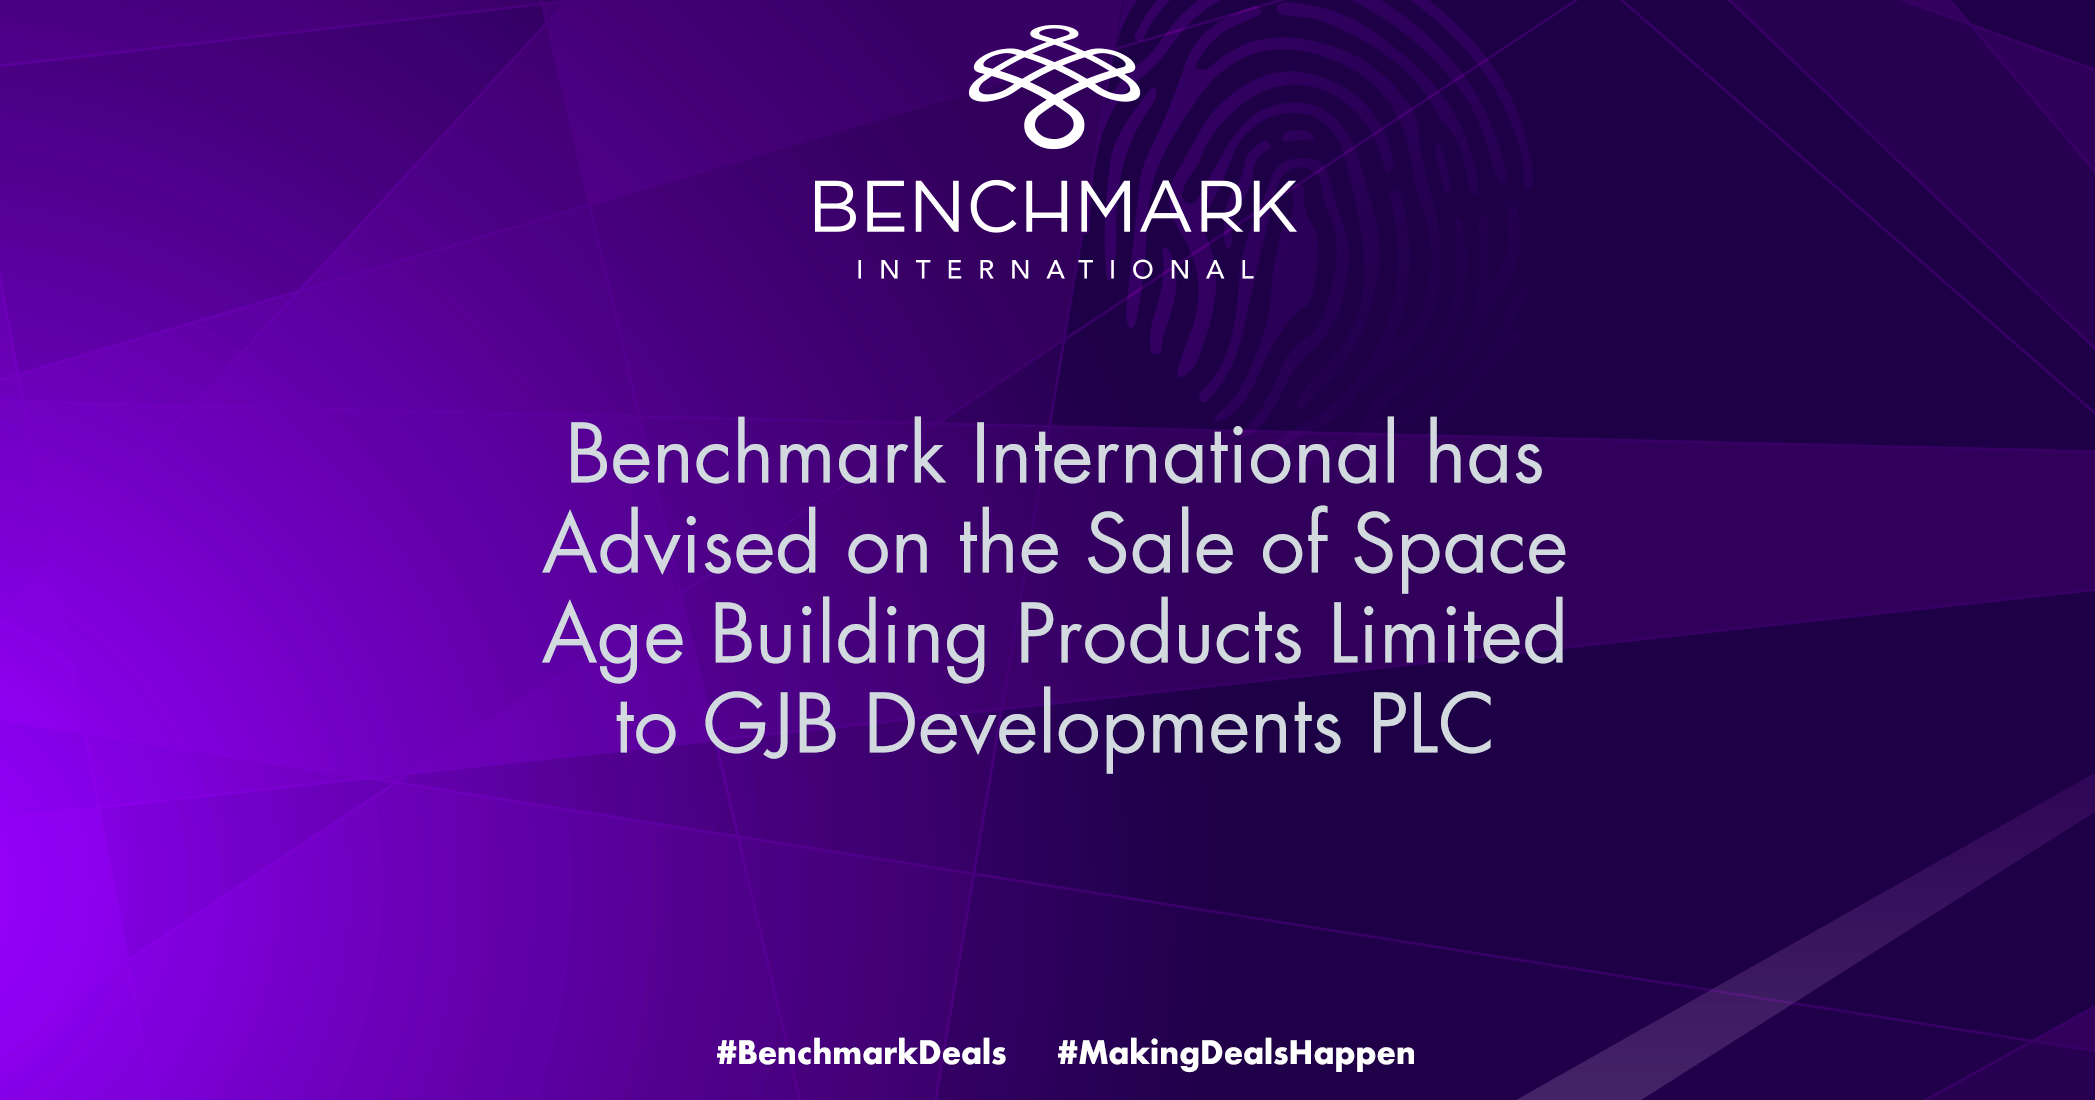 Benchmark International has Advised on the Sale of Space Age Building Products Limited to GJB Developments PLC